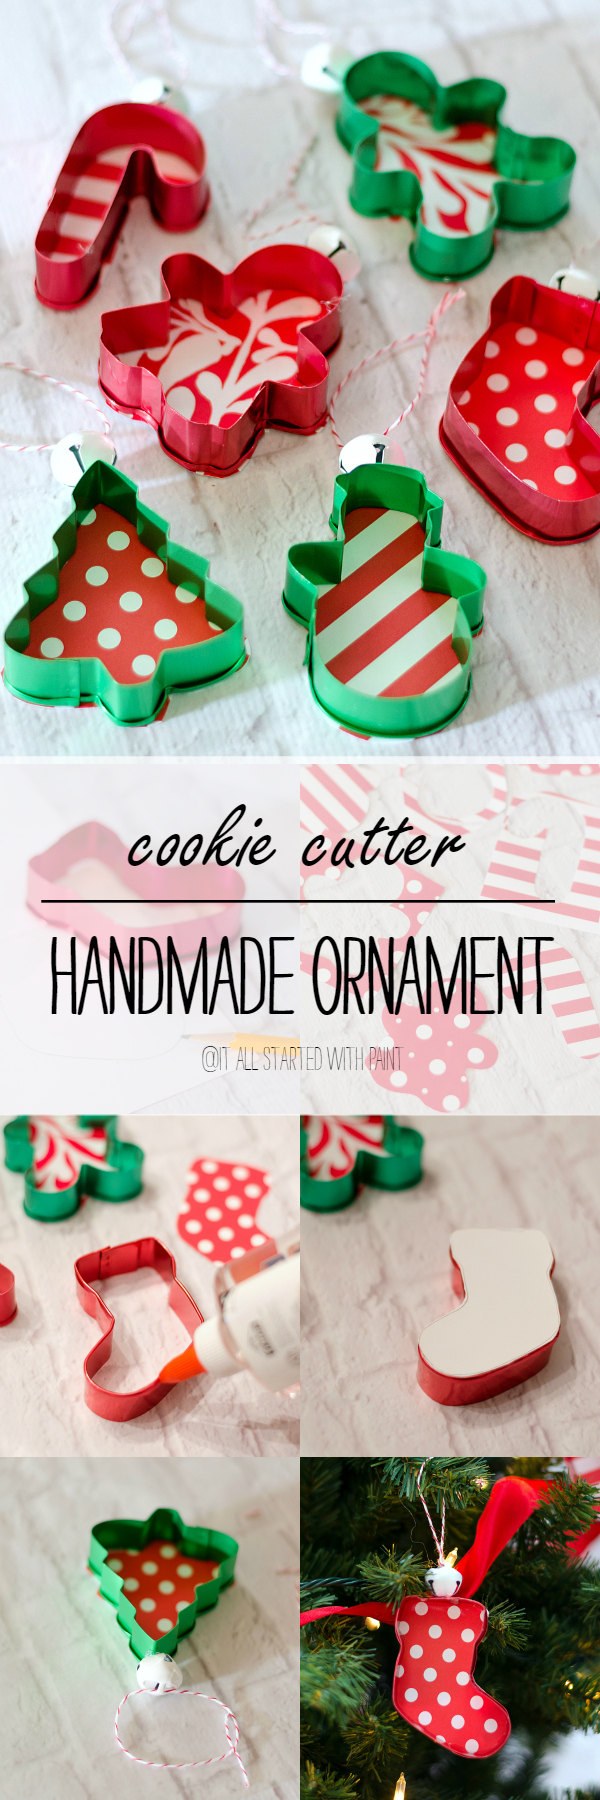 Handmade-Ornament-Cookie-Cutter-Ornament Ideas